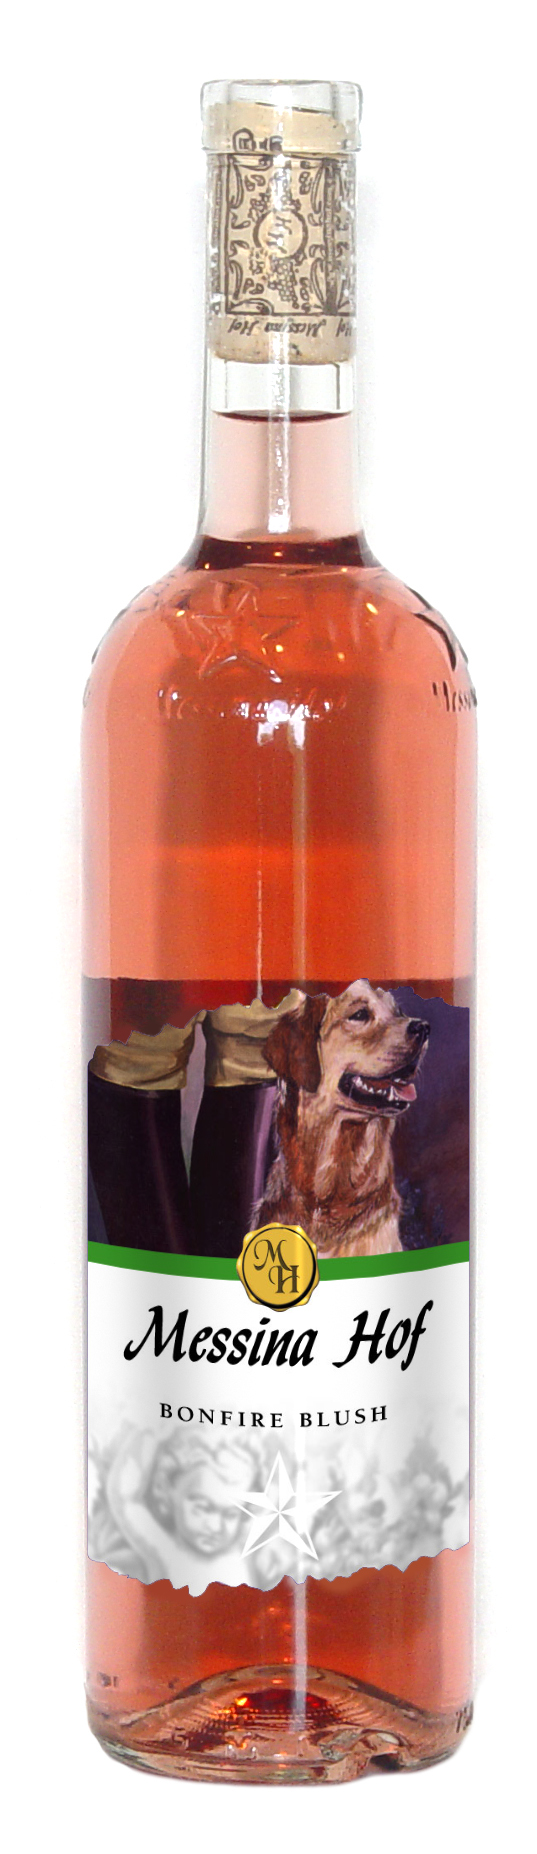 Messina Hof S Bonfire Blush Is Bottled Annually For Thanksgiving Created From Zinfandel Grapes Which Are Grown I Wine Bottle Fermentation Zinfandel